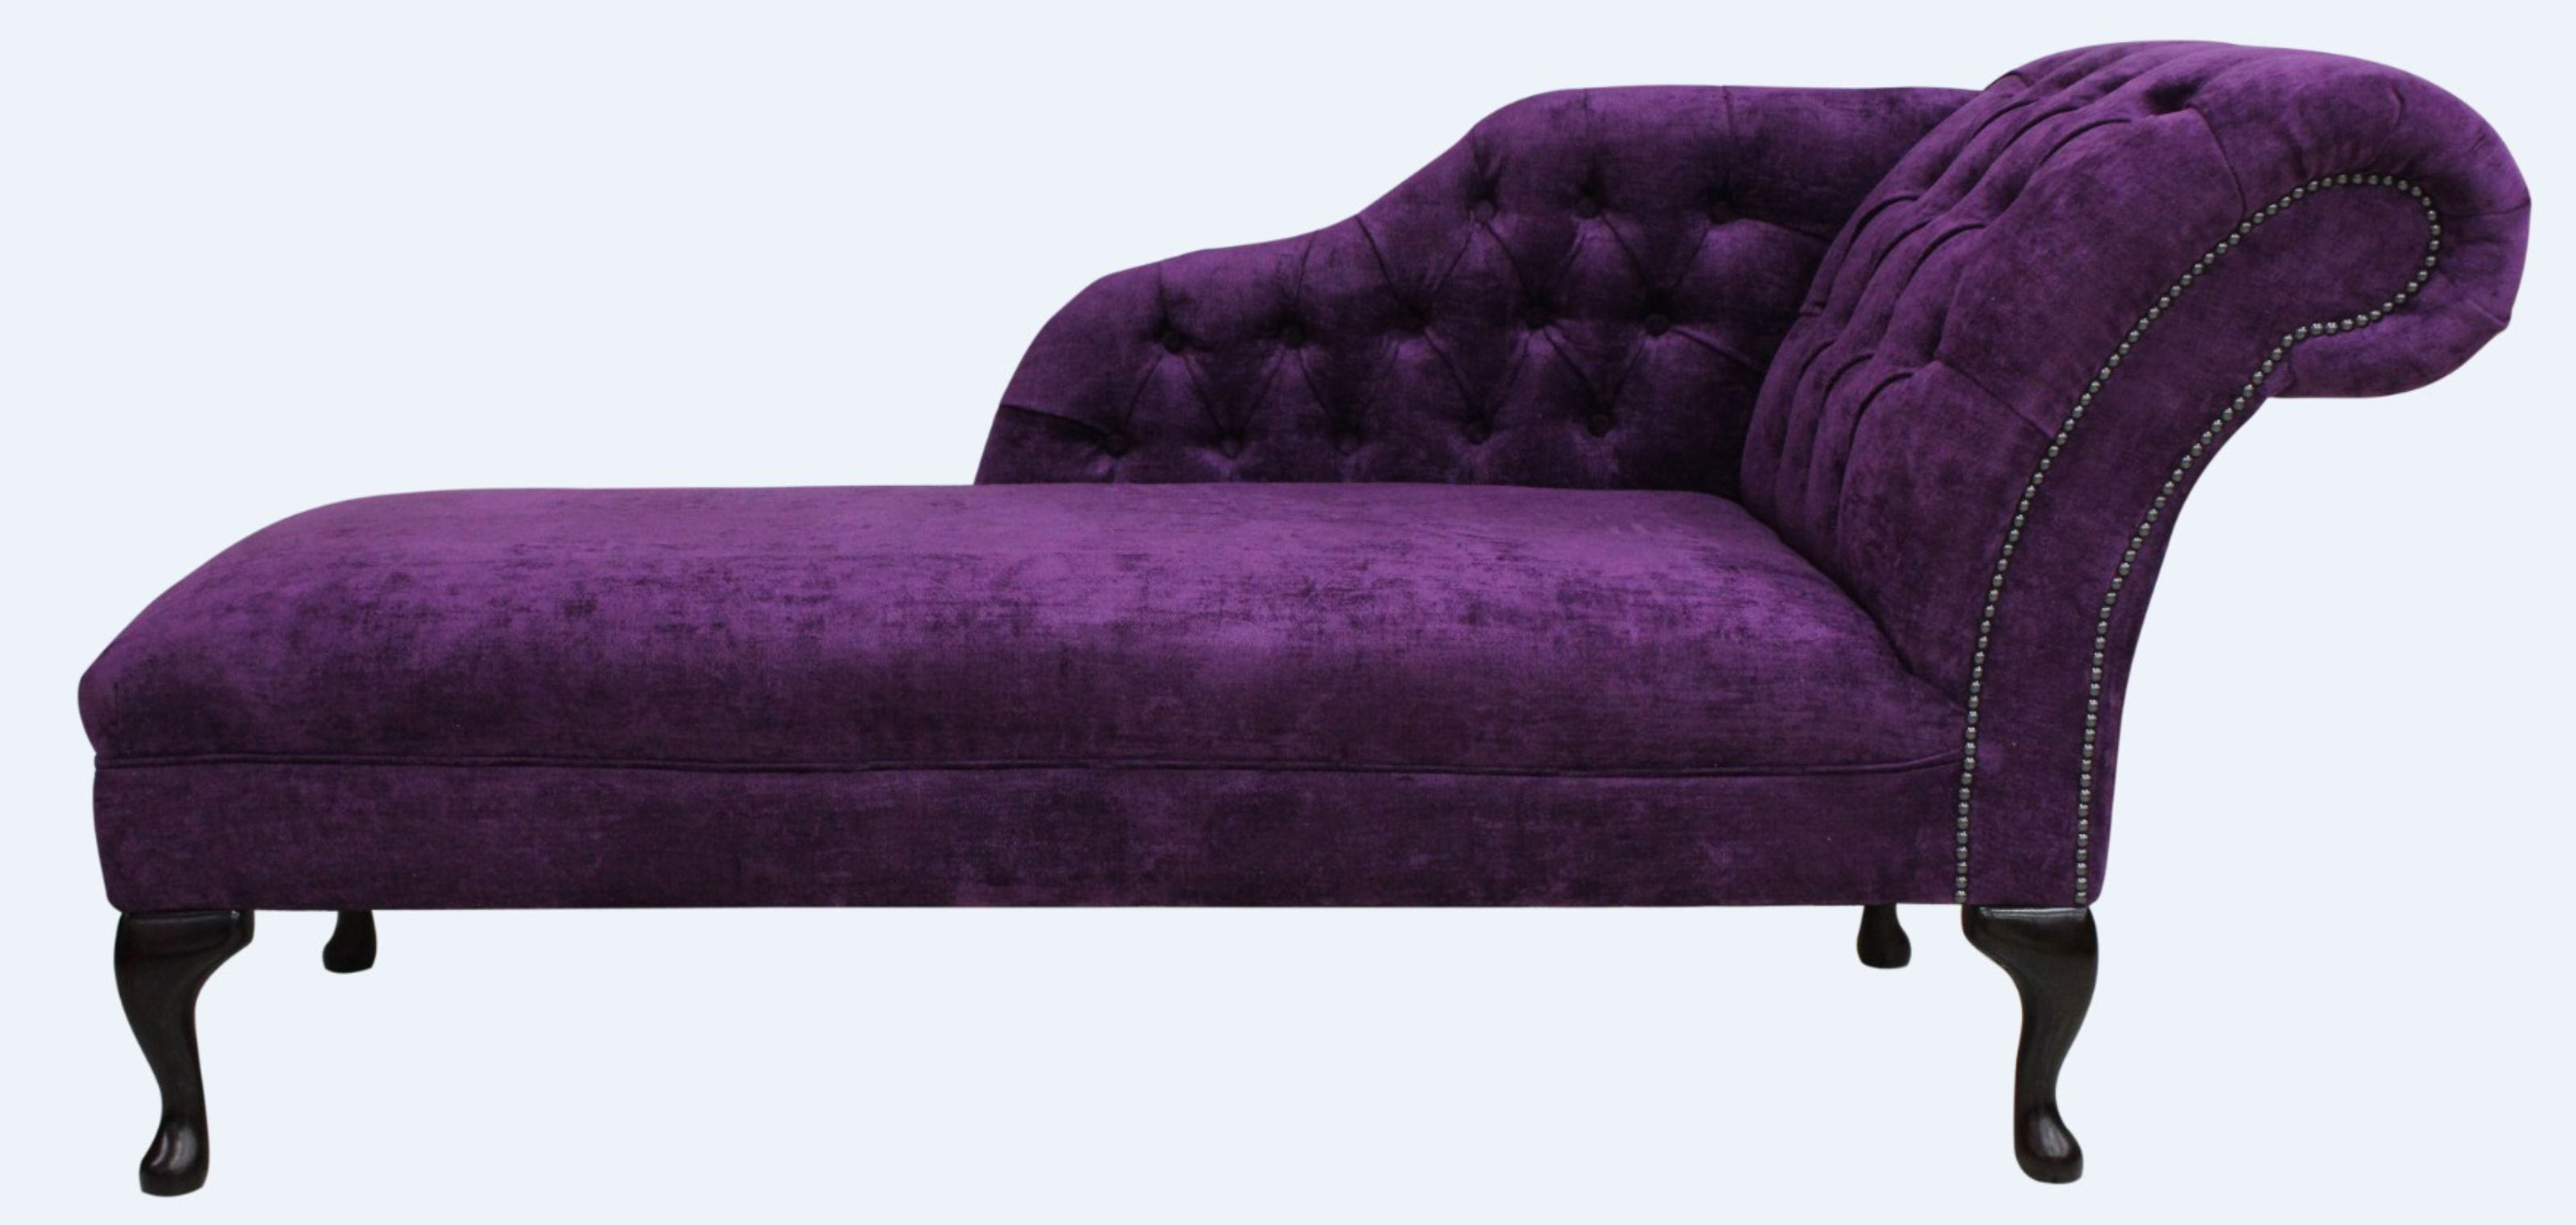 Chesterfield Chaise Lounge Day Bed Velluto Amethyst Purple Fabric